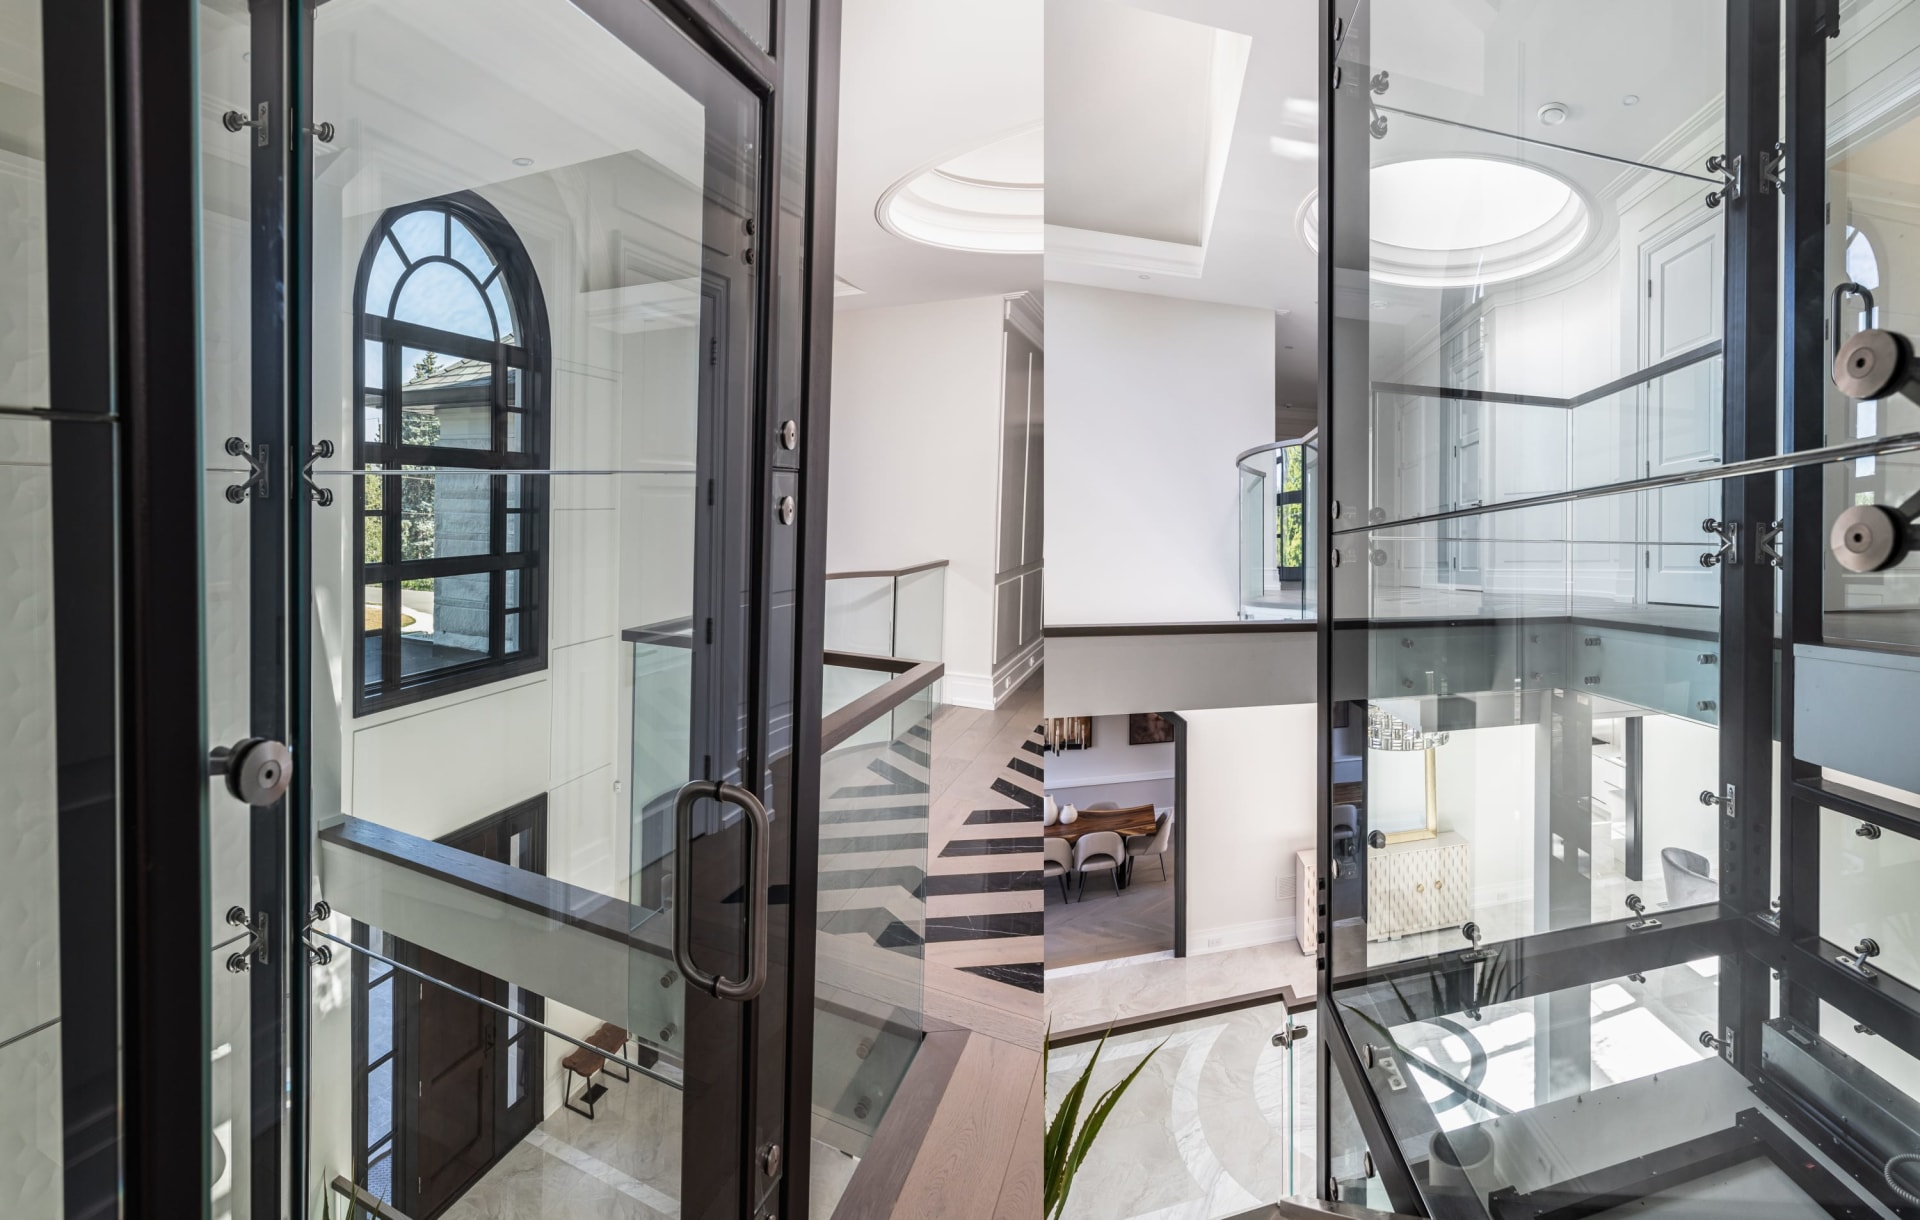 New Architecturally Significant Bridle Path Estate